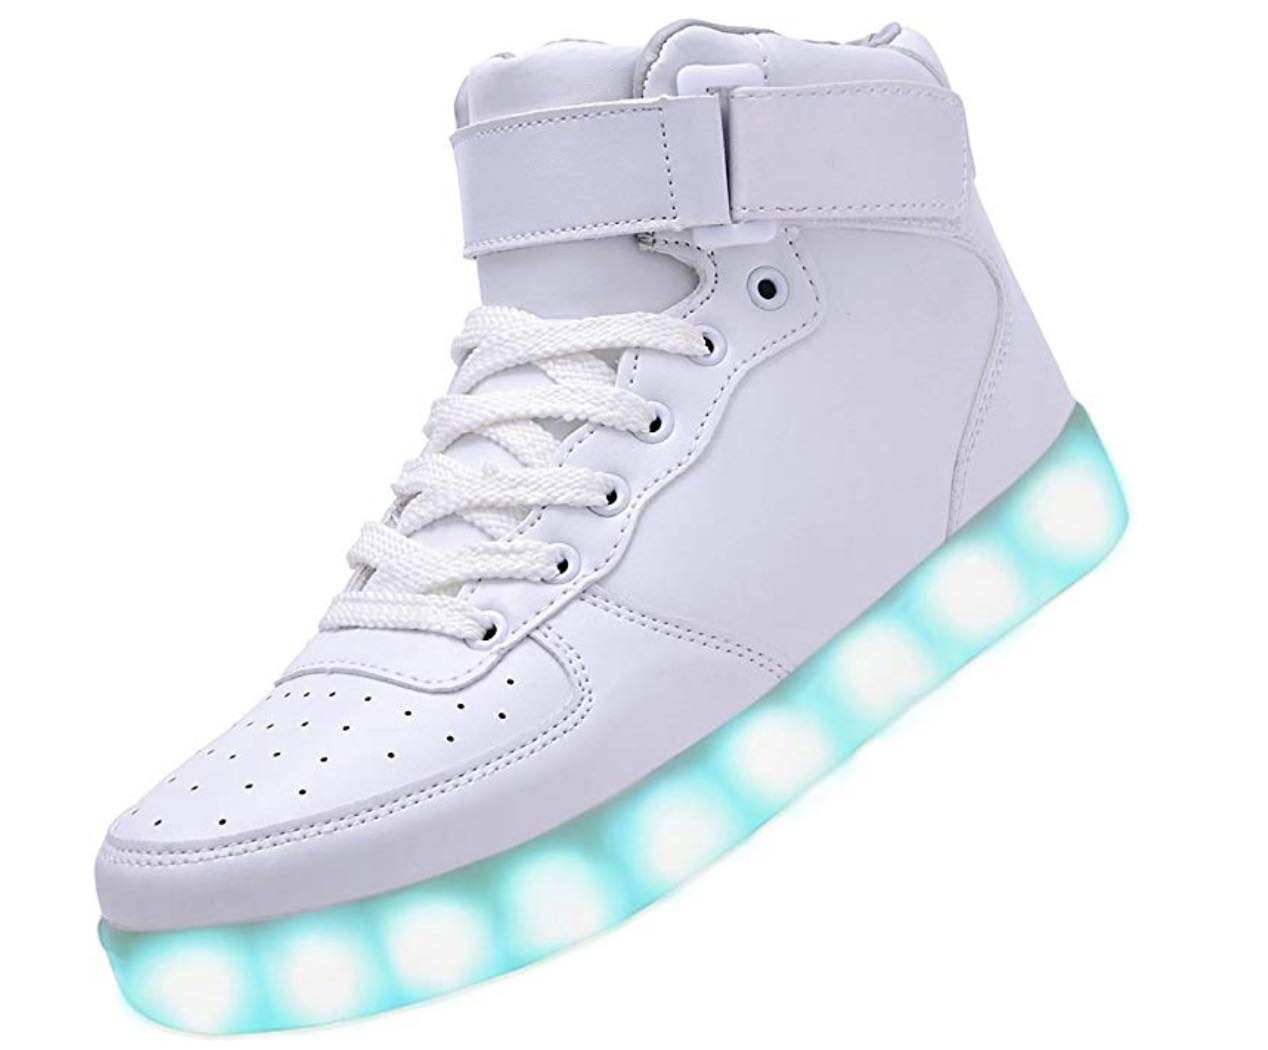 LED Shoes - Best Shoes for Music Festivals 2020